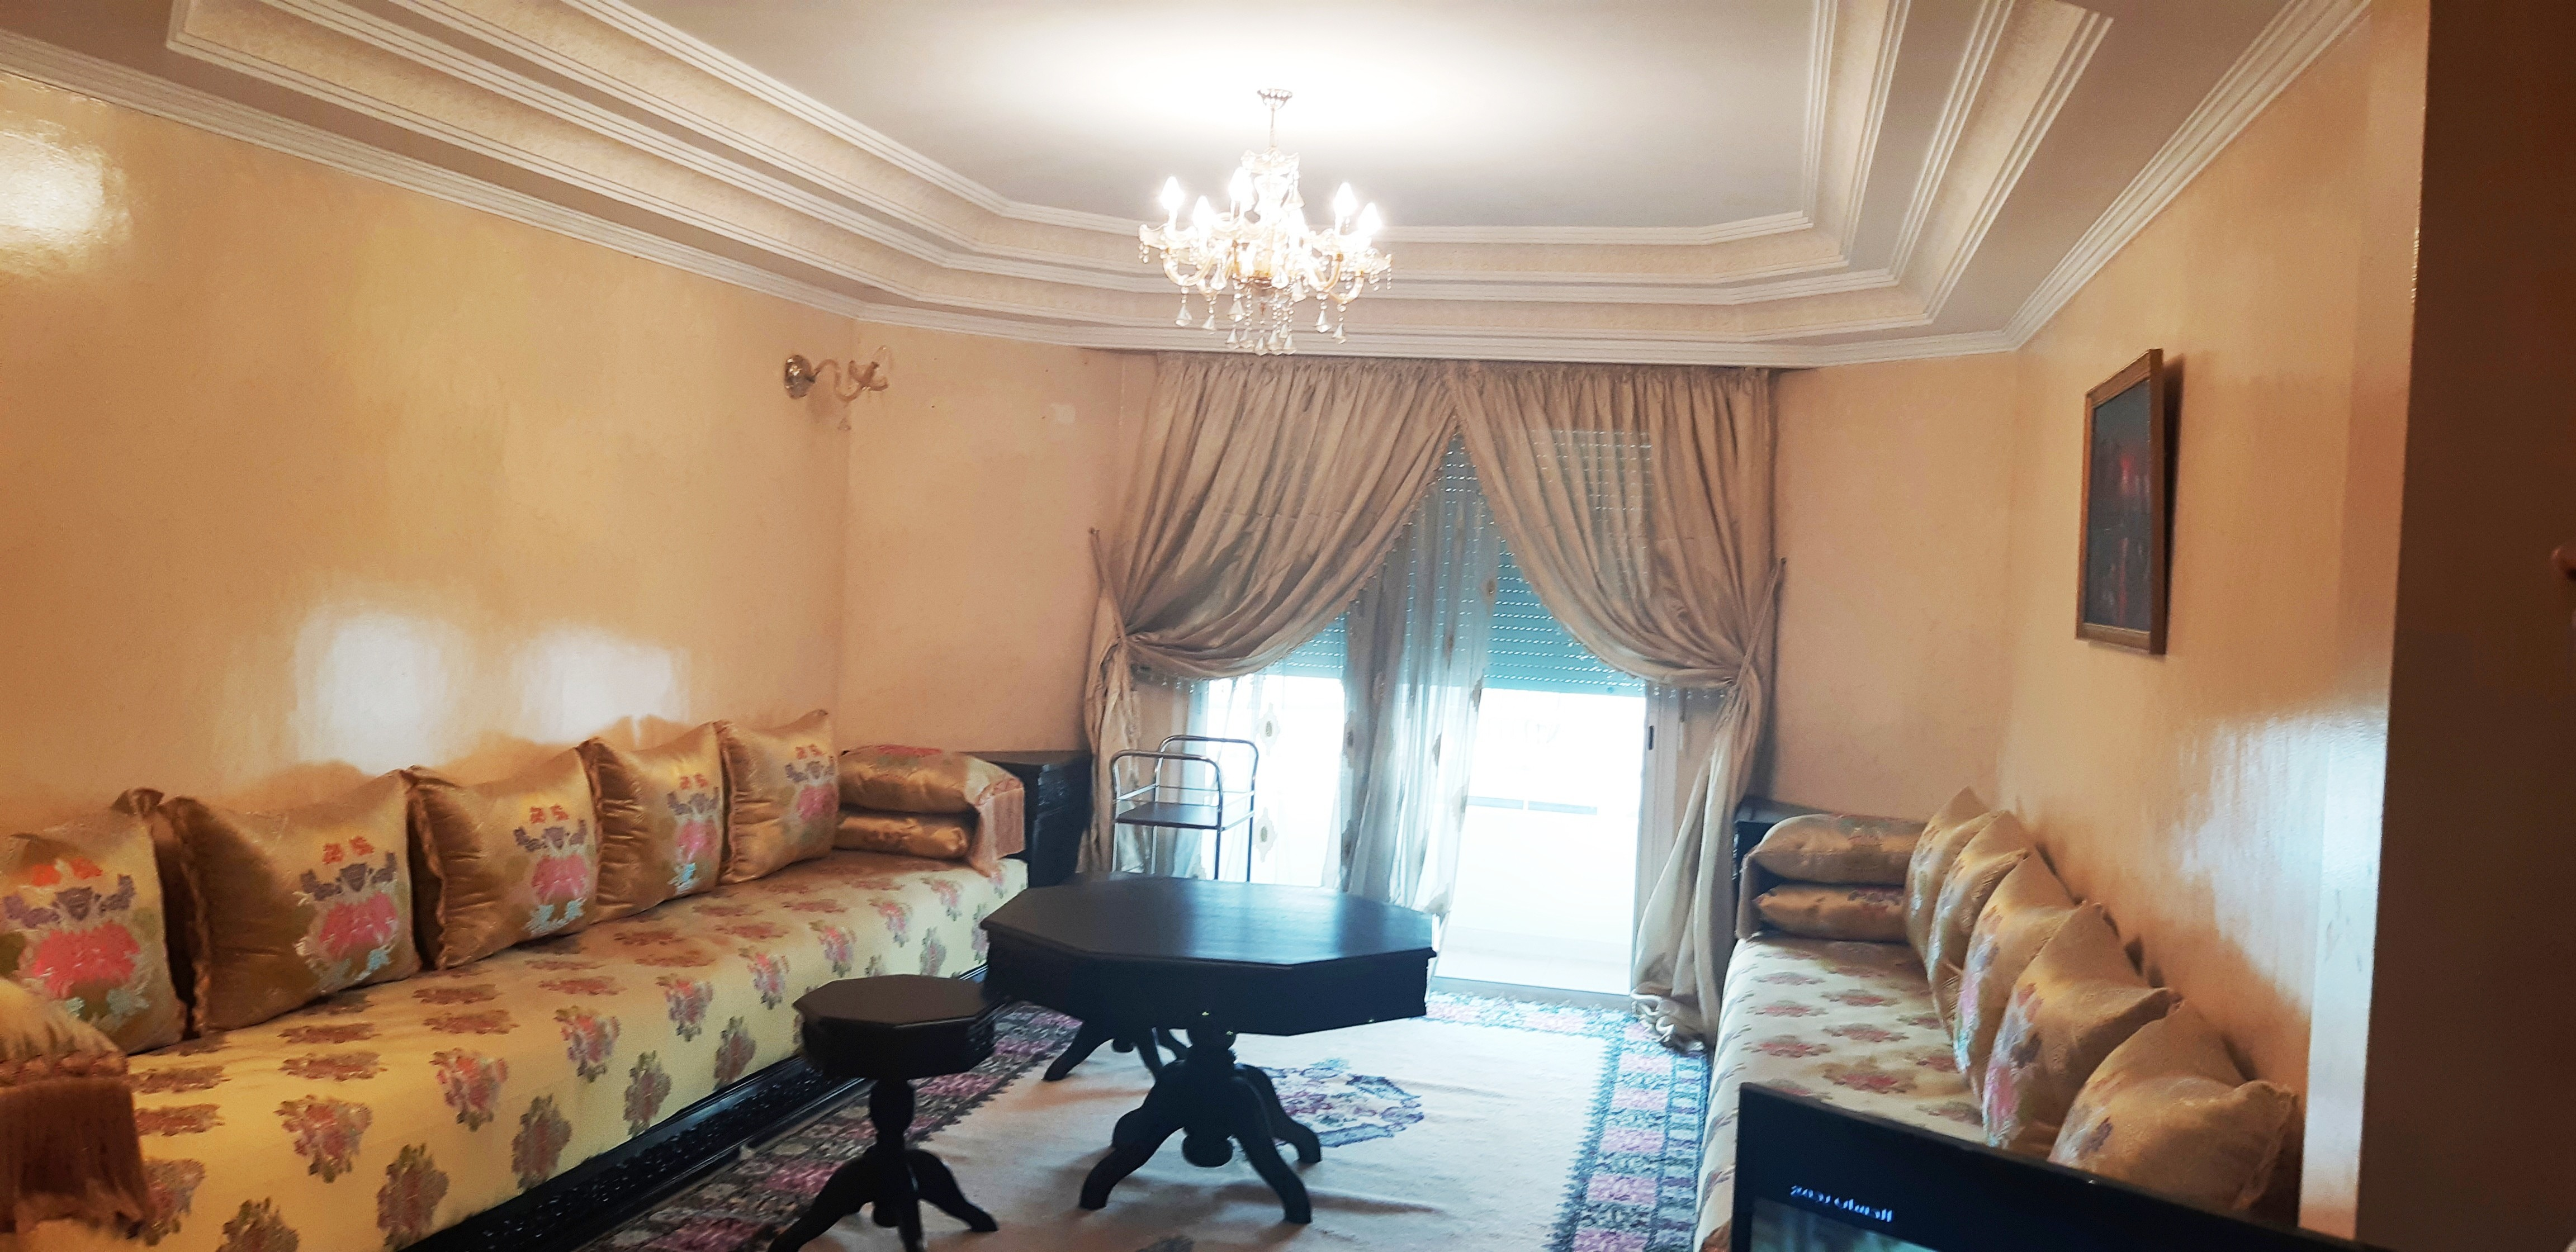 Vente <strong>Appartement</strong> Rabat Agdal <strong>72 m2</strong>